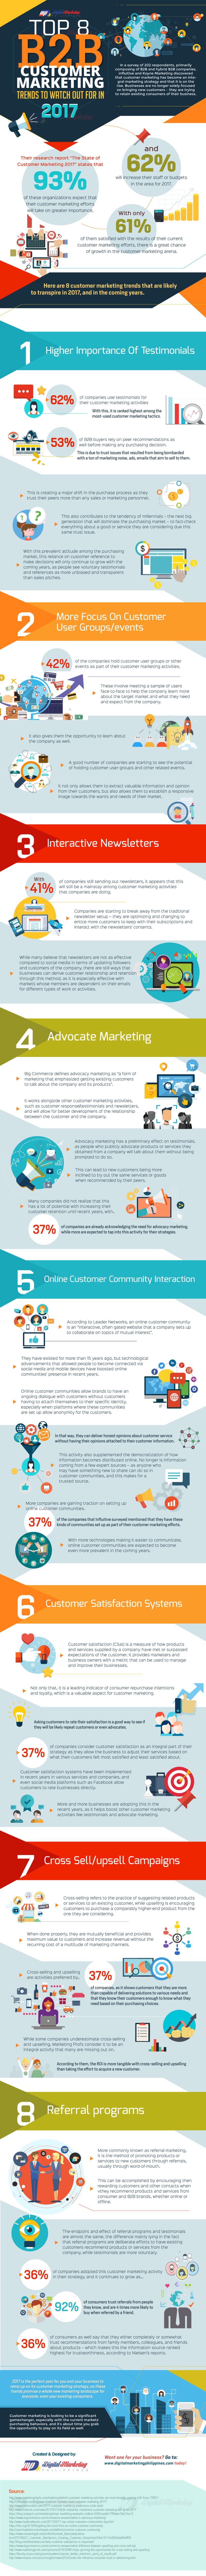 Red-Crow-Marketing-Customer-Marketing-Infographic